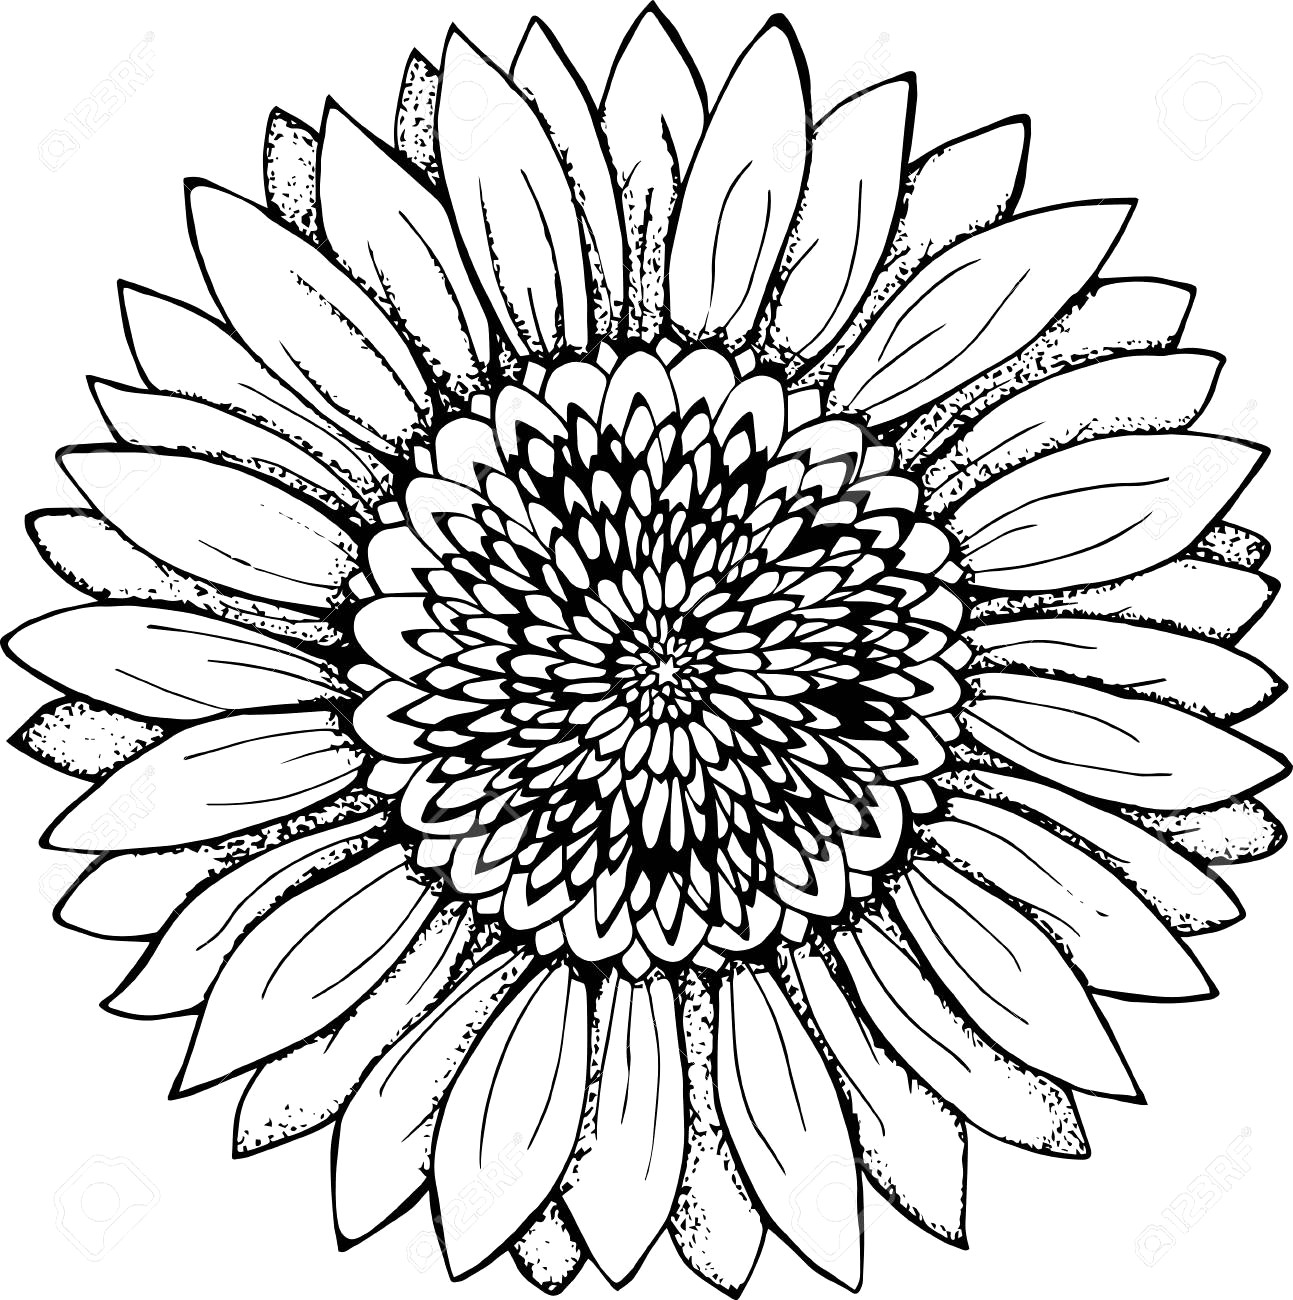 sun flower drawing sunflower drawing simple free download on clipartmag flower sun drawing